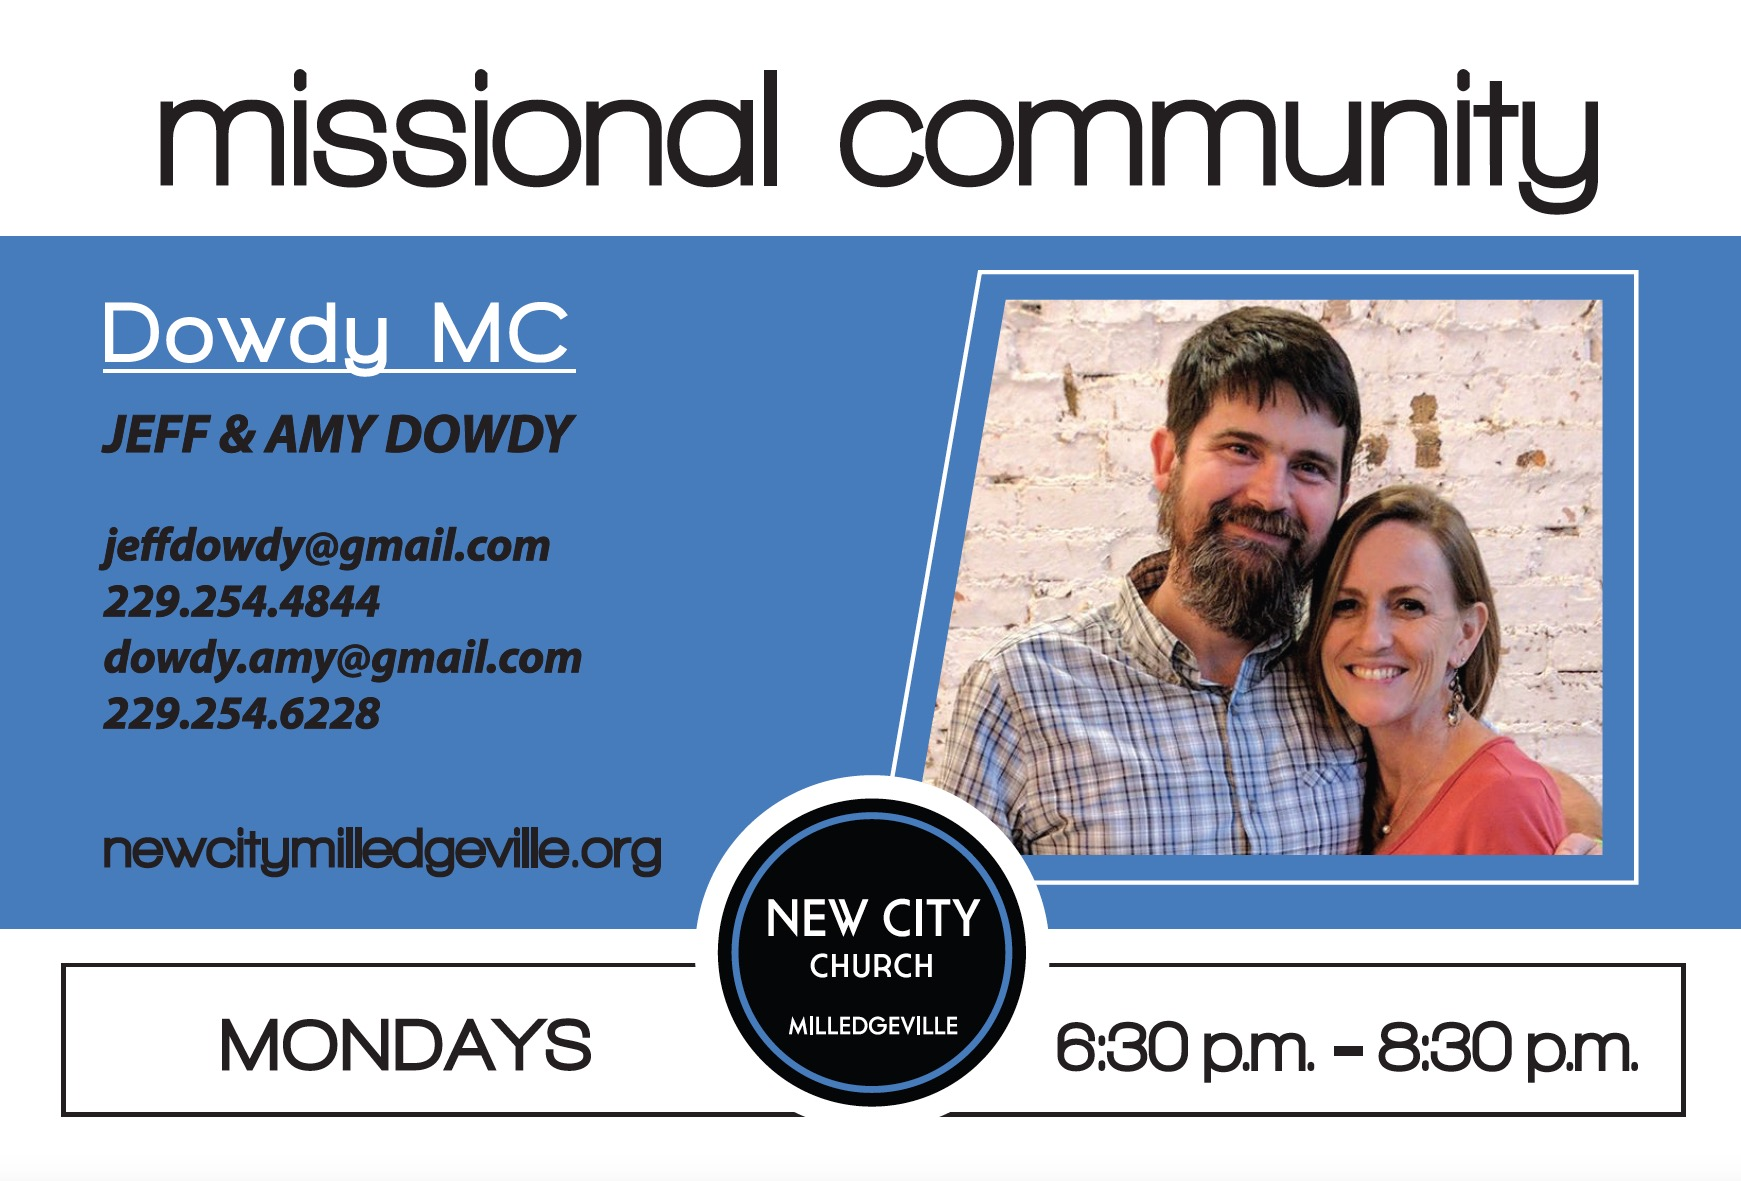 Email the Dowdys '